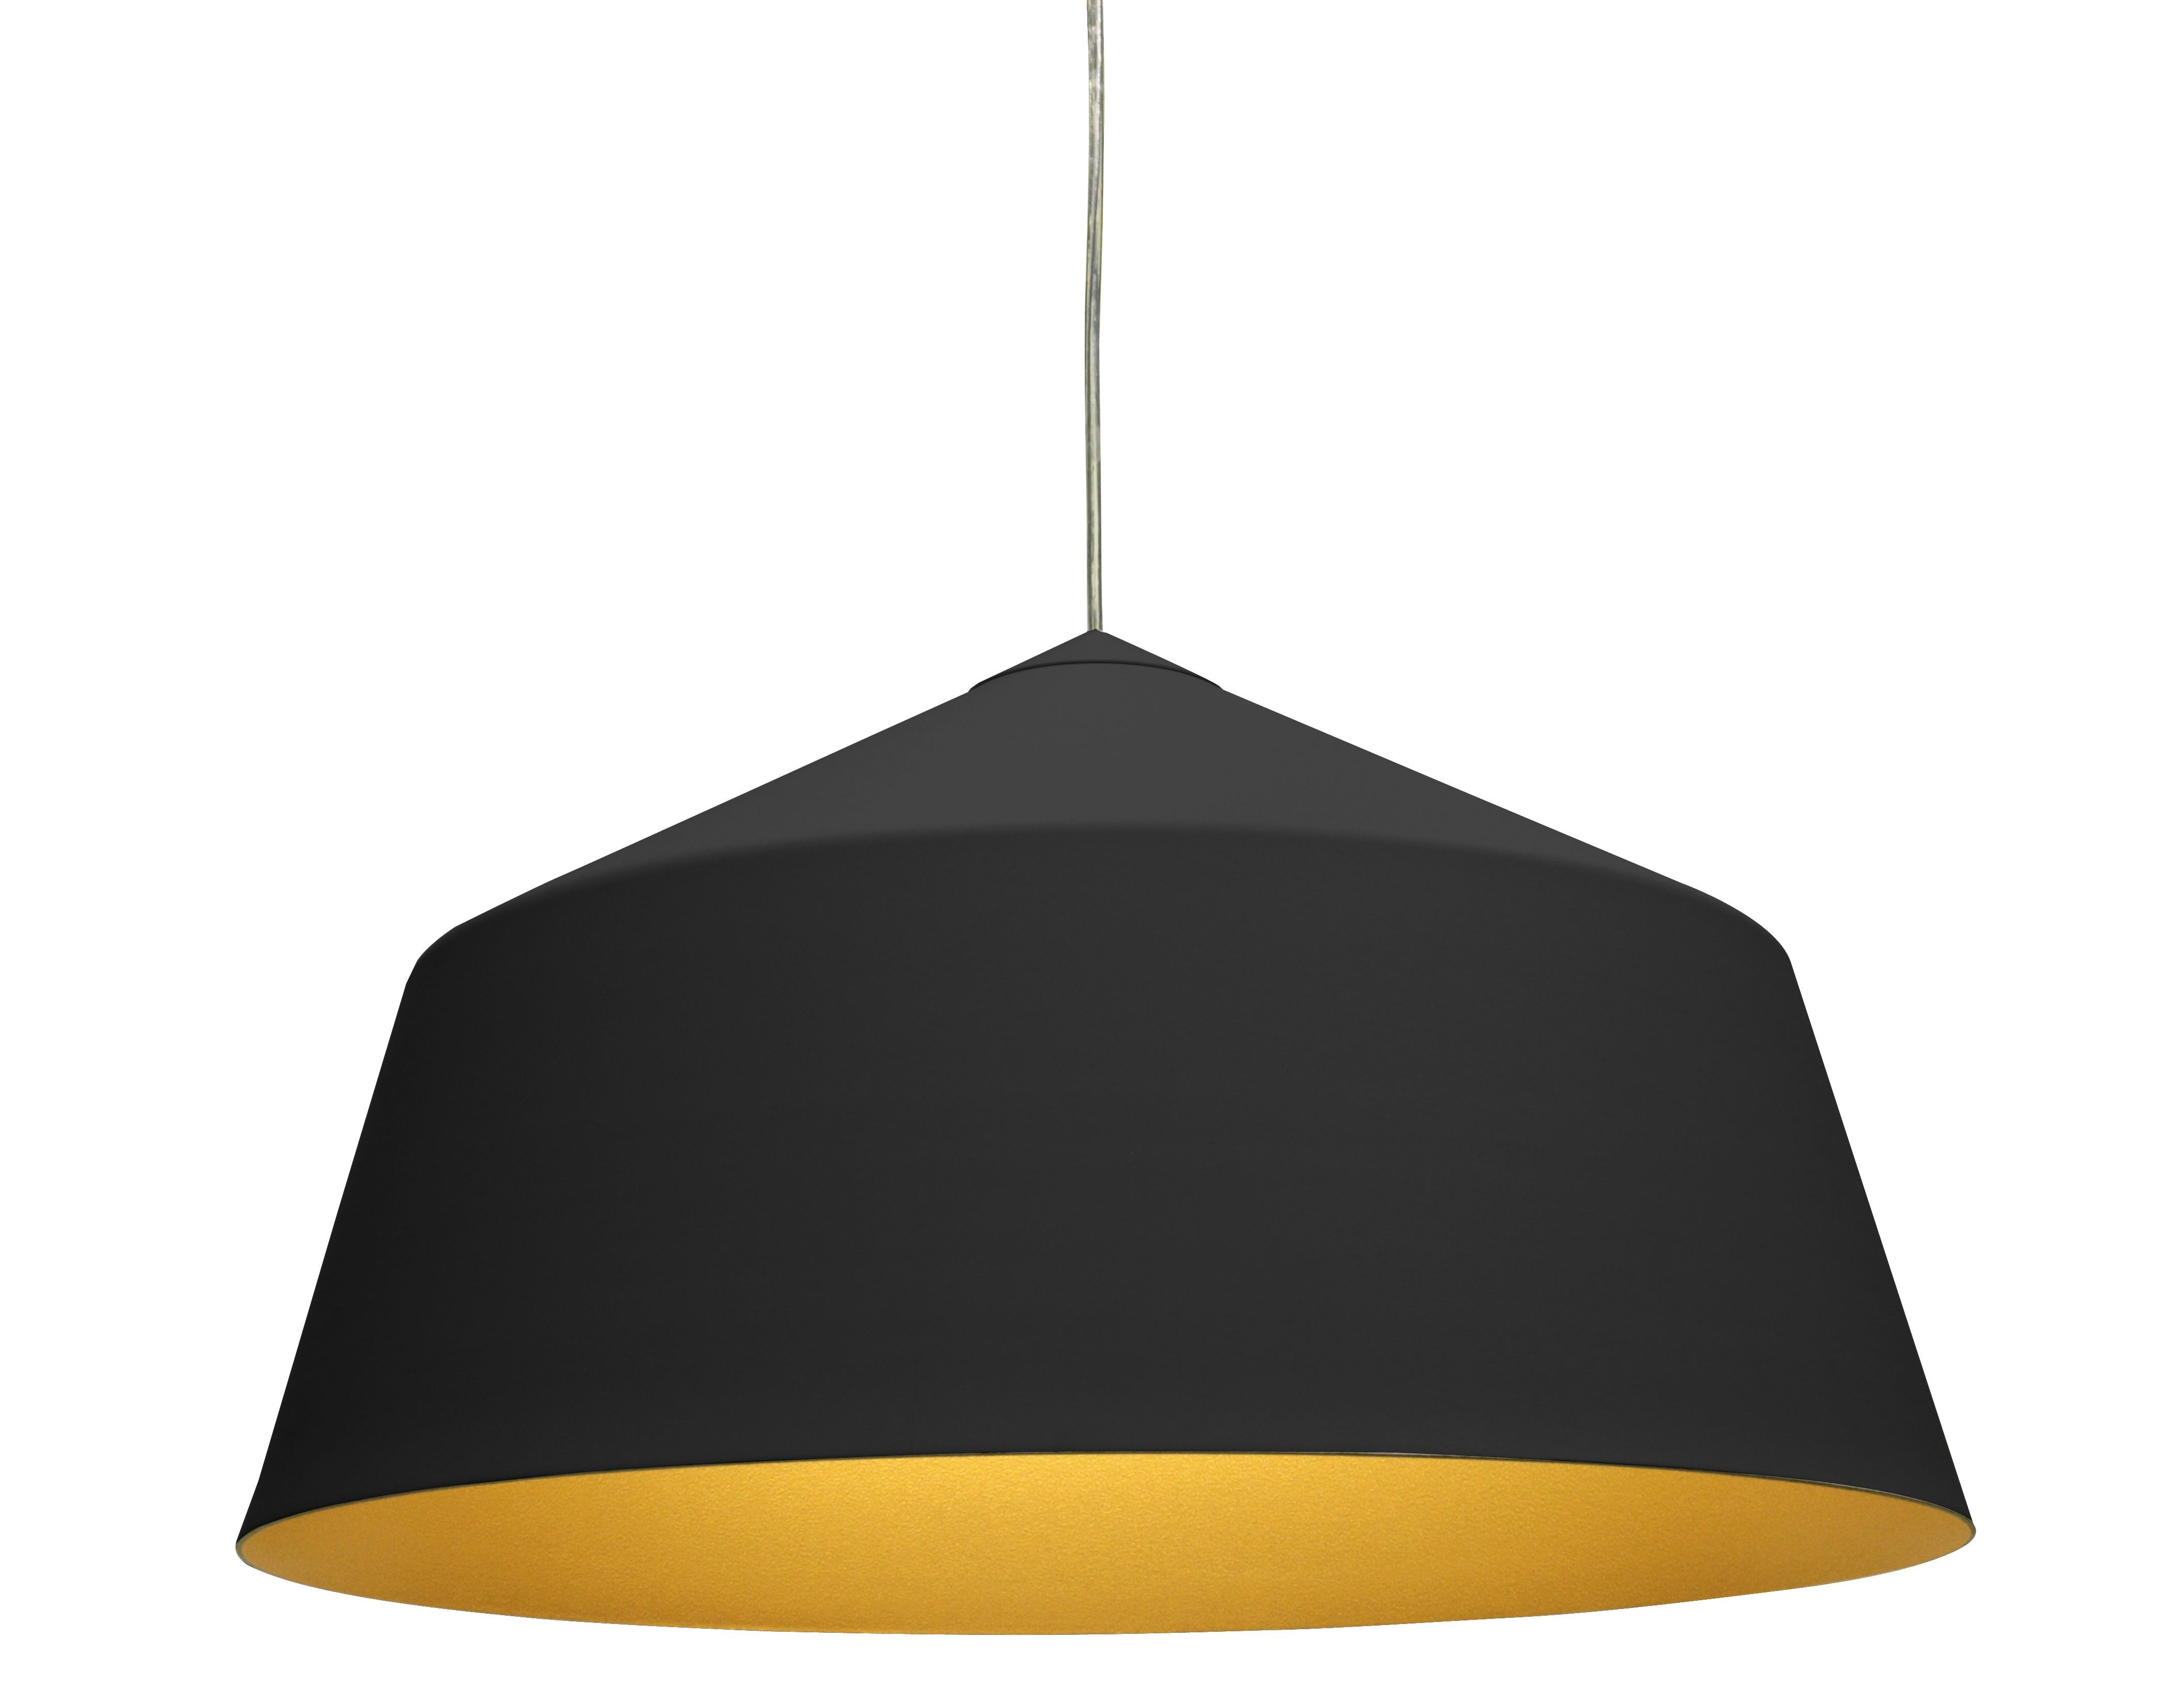 Corinna Warm Circus Pendant Lamp in Black or White in 56cm